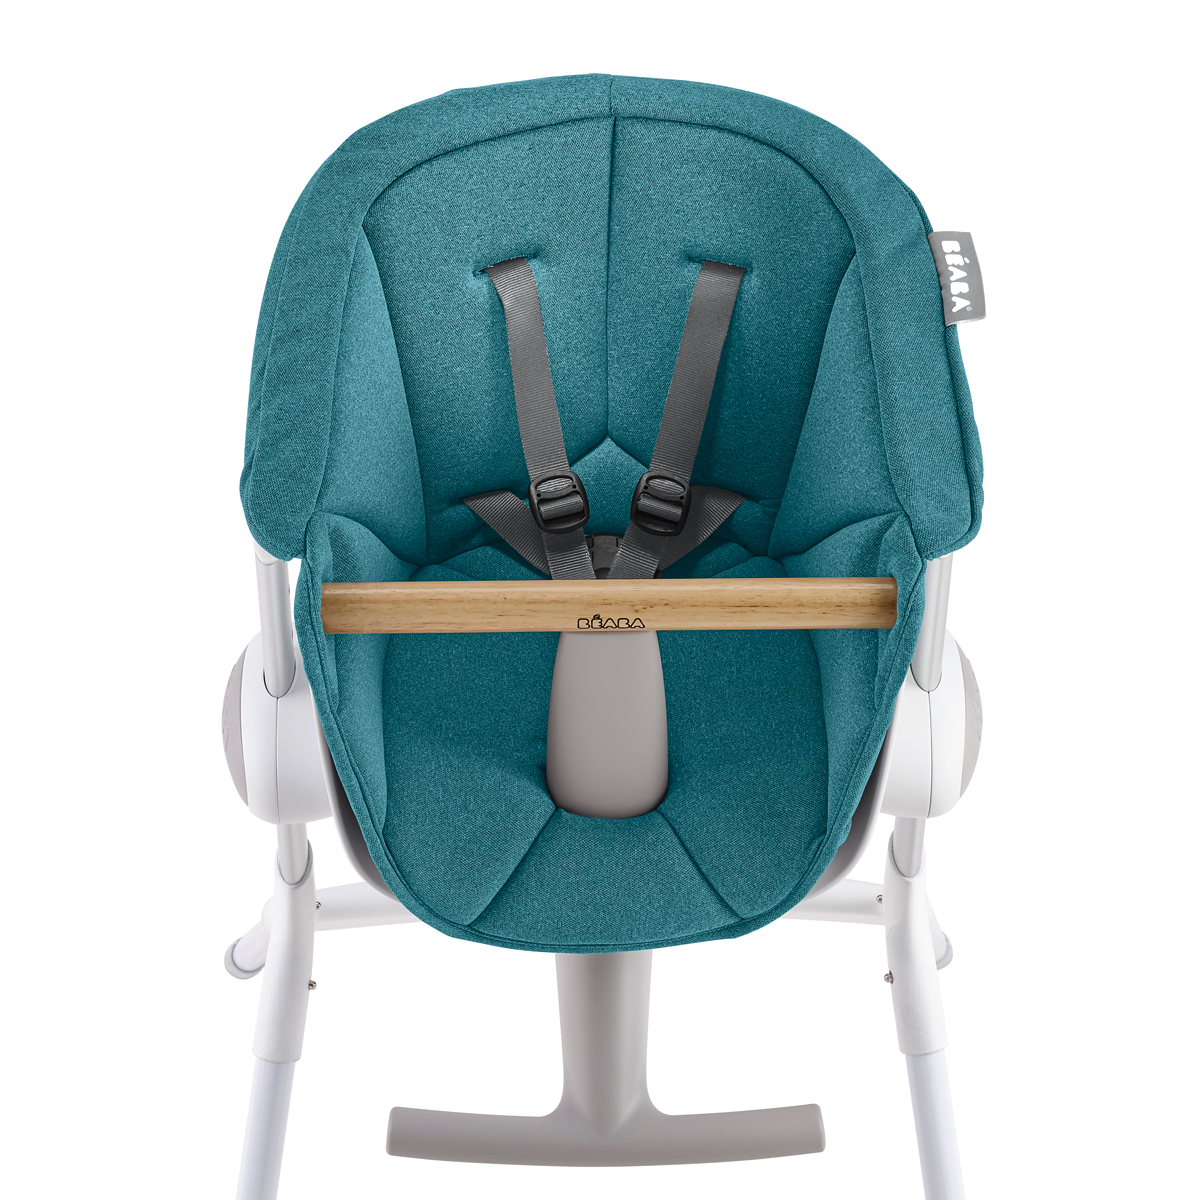 Chaise haute Assise Up & Down - Blue Assise Up & Down - Blue